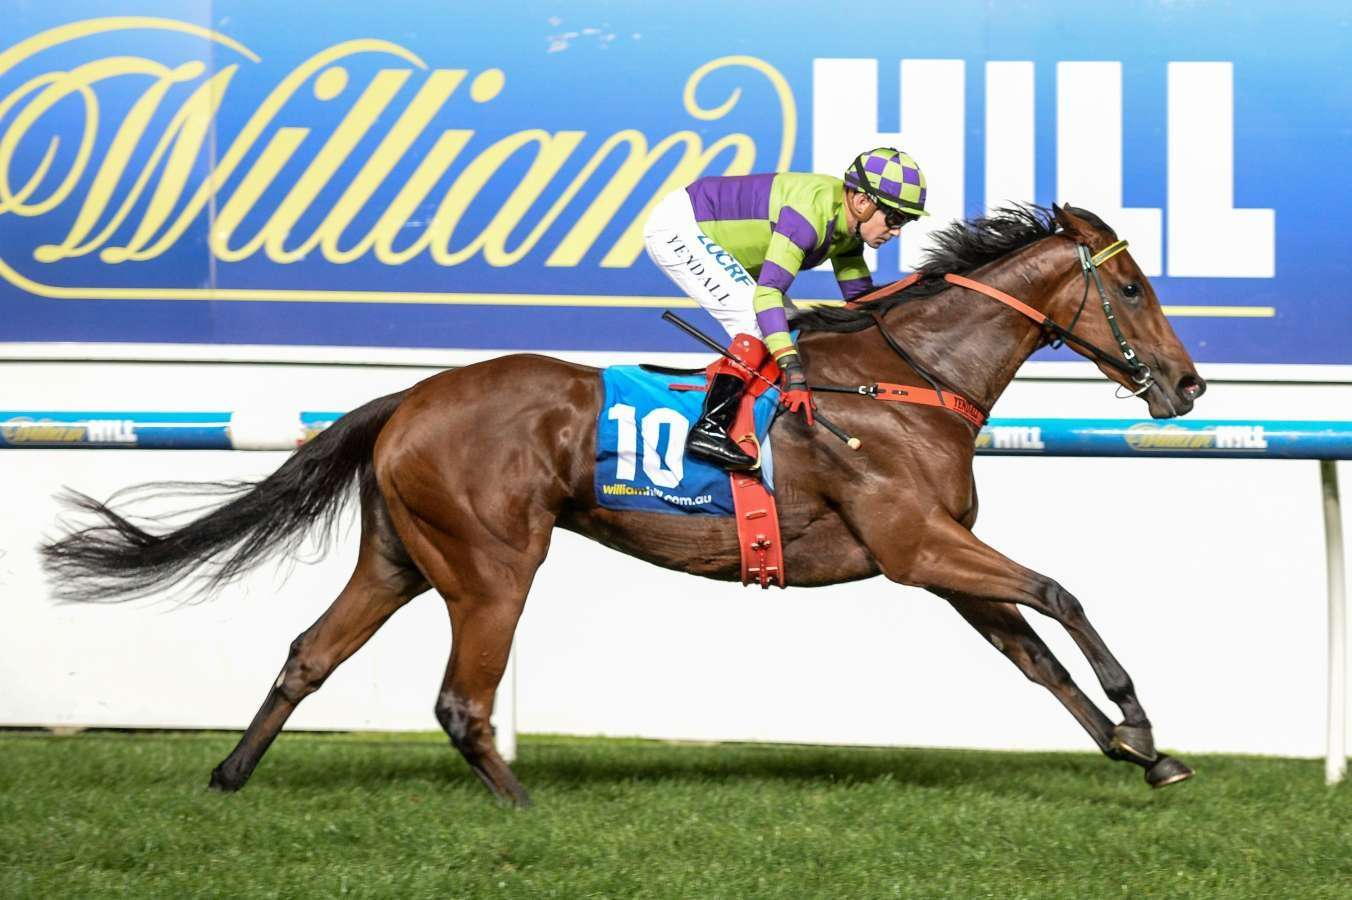 William Hill exits Australia with CrownBet sale